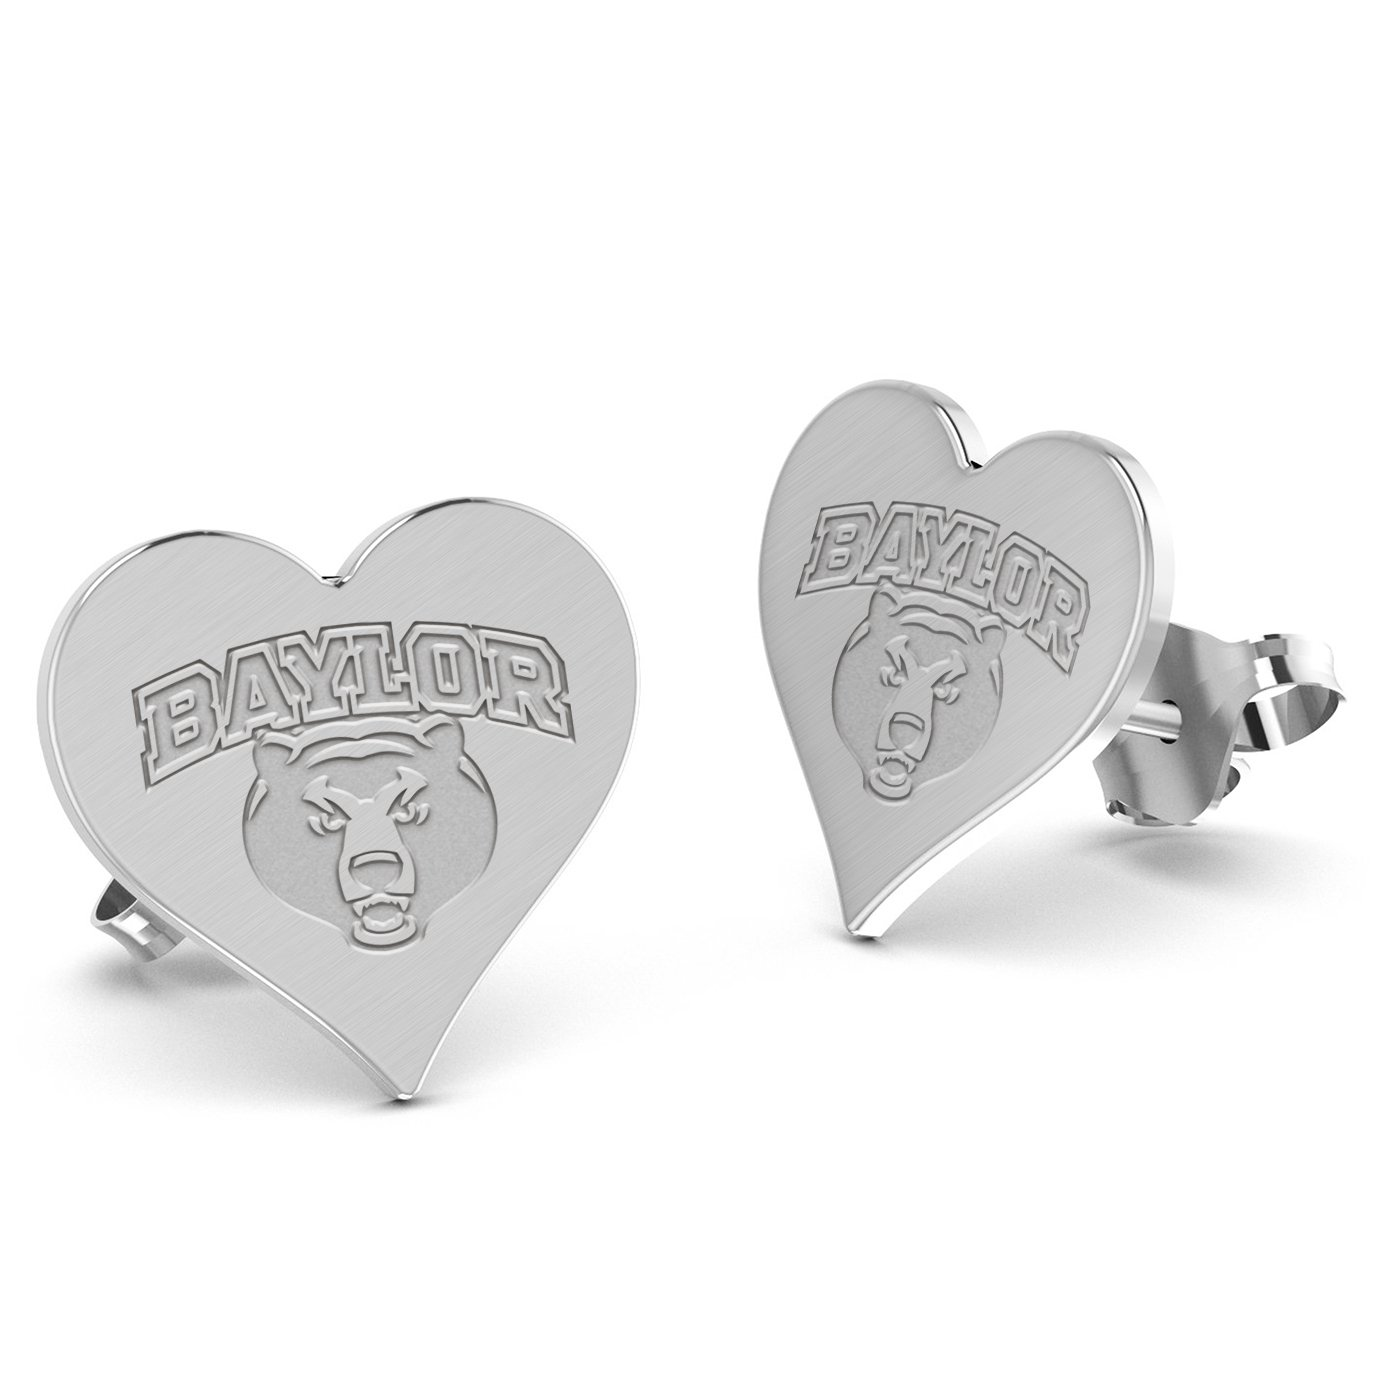 Baylor Bears Heart Stud Earring See Image on Model for Size Reference